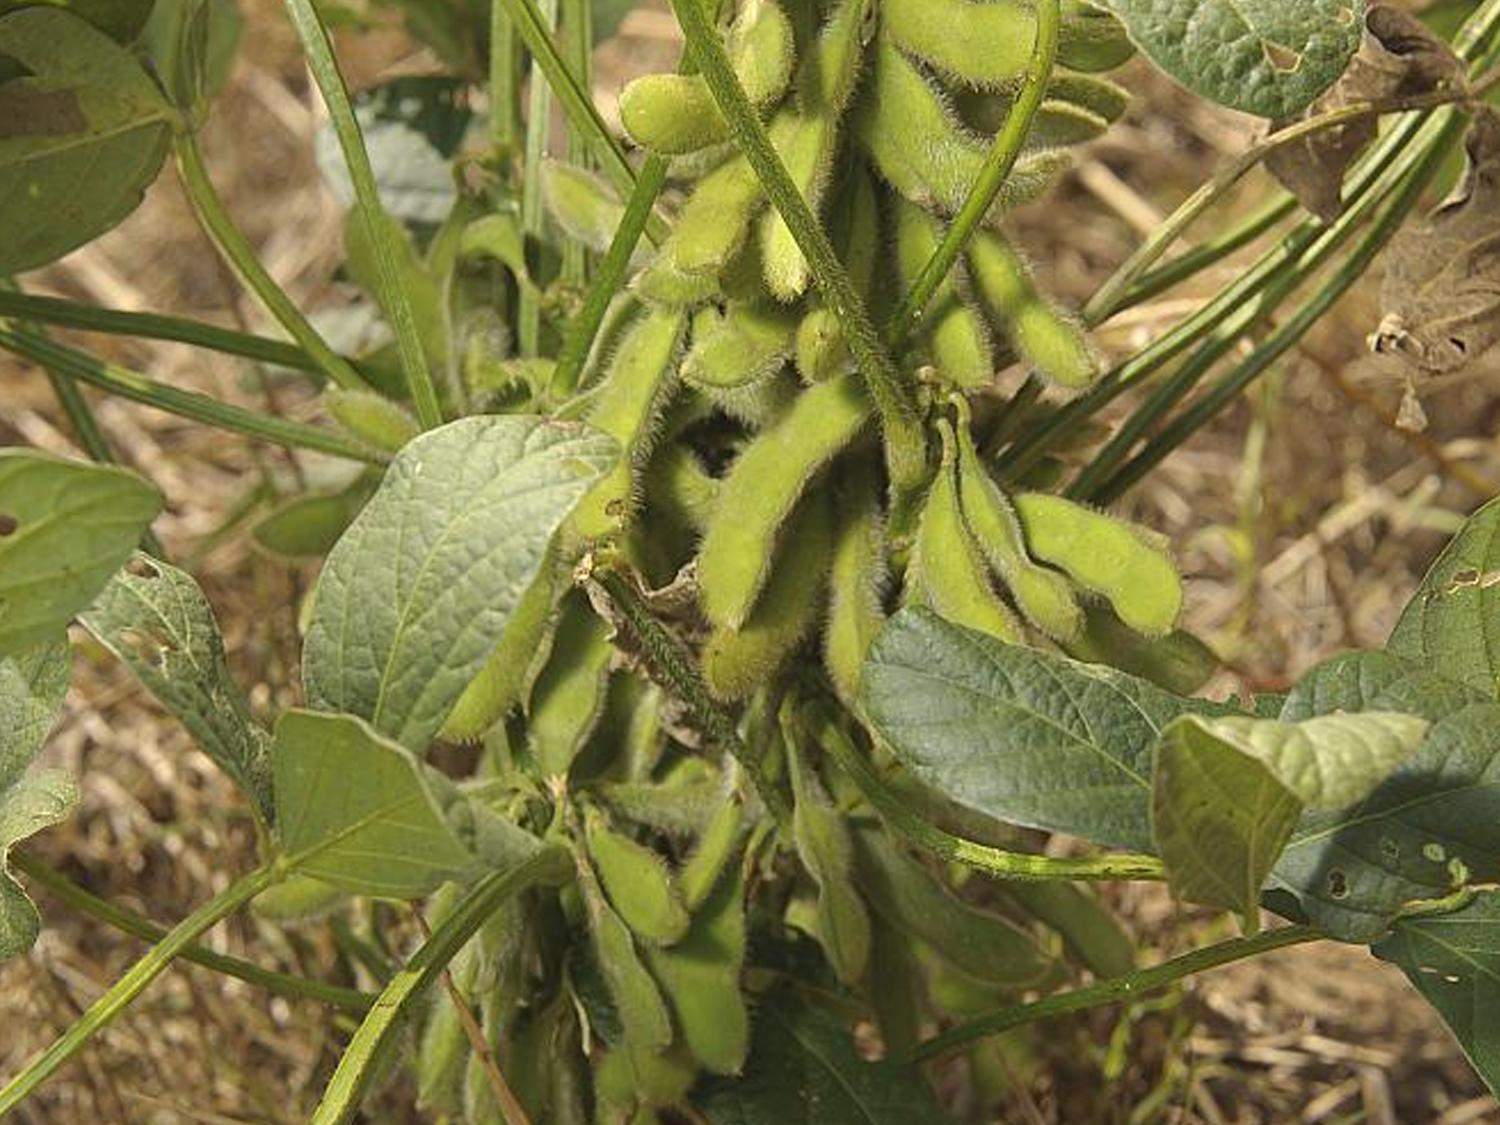 Soybeans remain Mississippi's largest crop with 2.3 million acres expected, according to a March 31 report by the U.S. Department of Agriculture. (MSU Ag Communications file photo/Kevin Hudson)